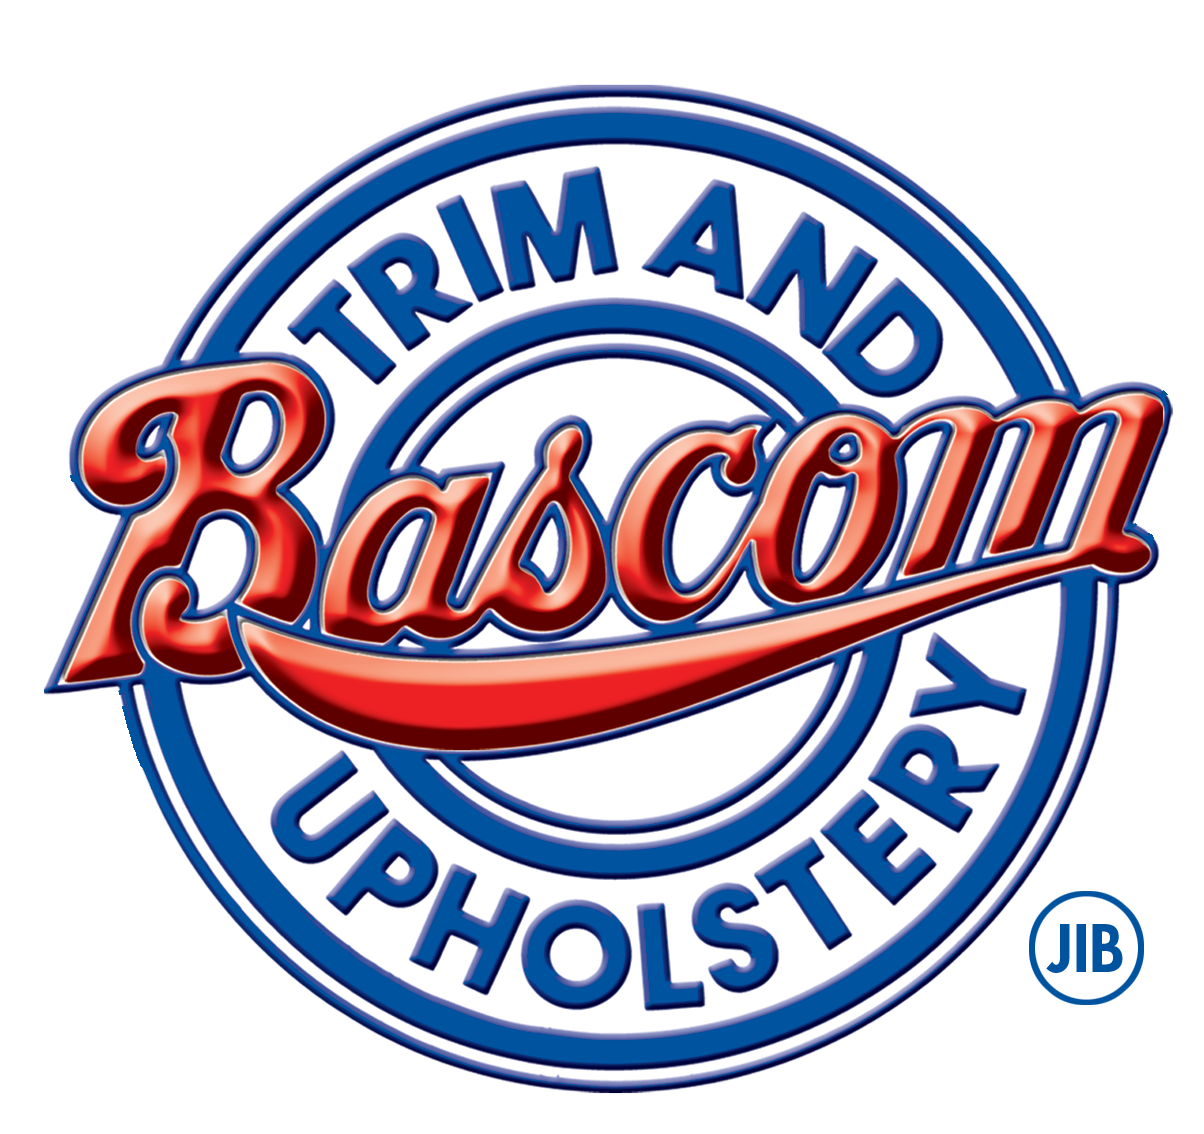 Bascom Trim Upholstery Bay Area Auto Upholstery Convertible Tops